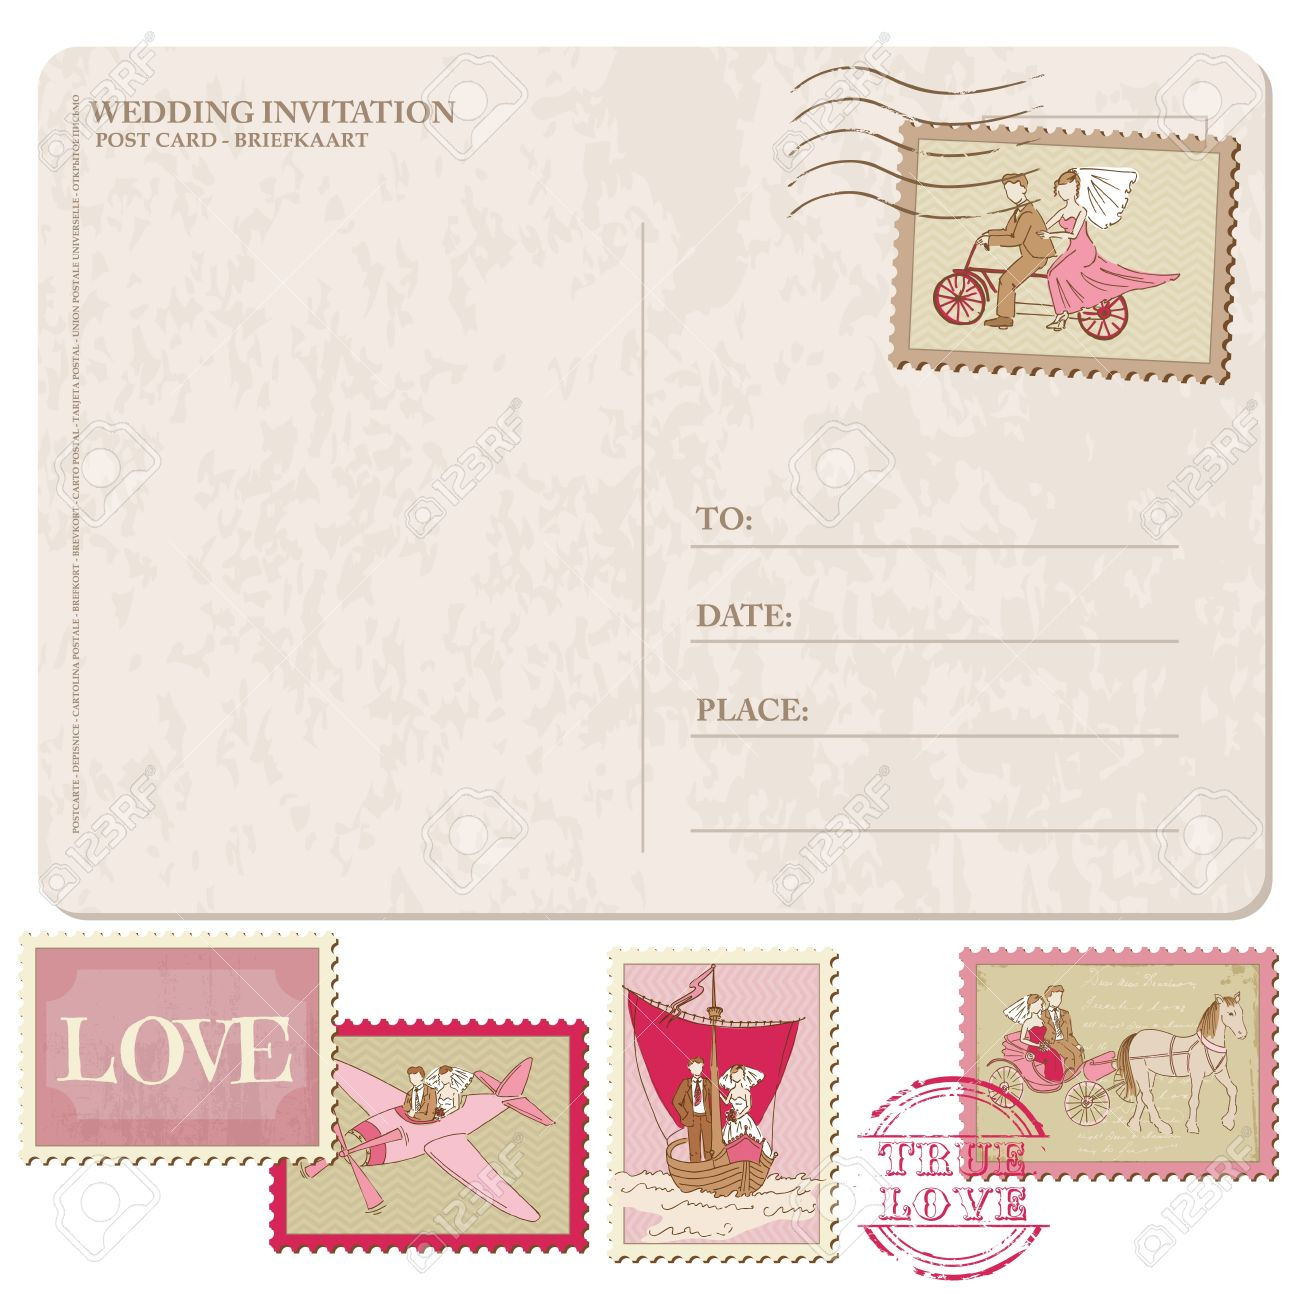 Wedding Invitation Vintage Postcard With Postage Stamps For